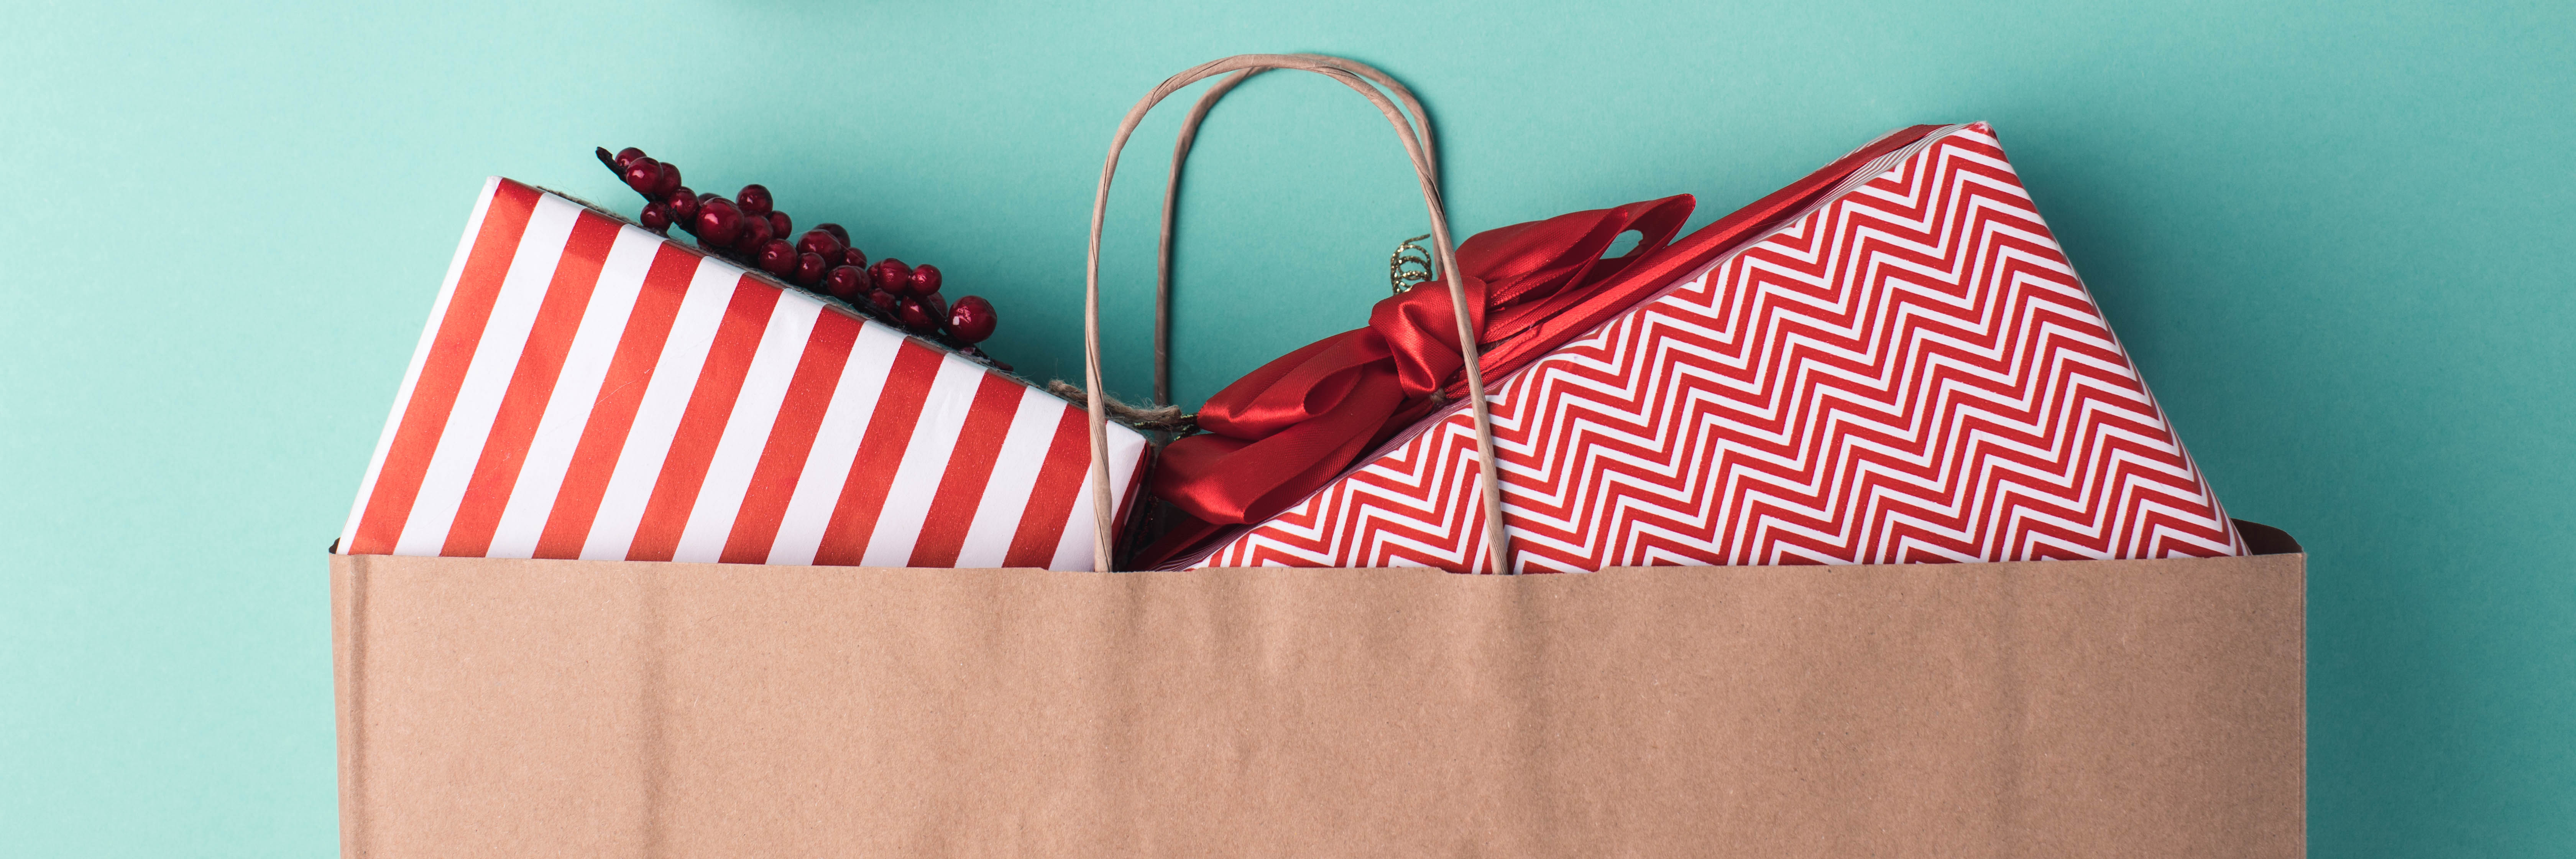 Christmas Presents in a Shopping Bag